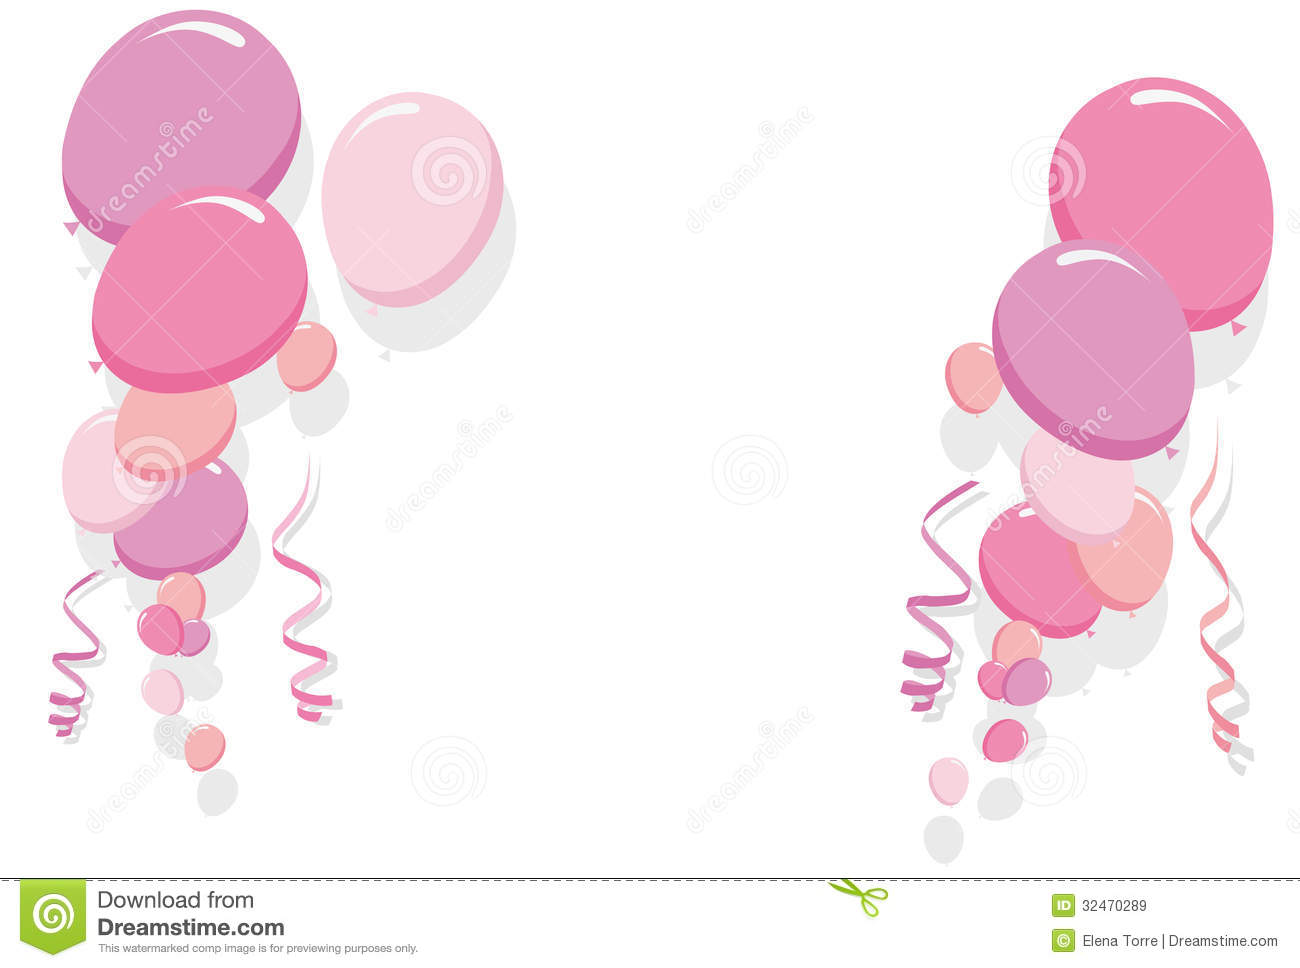 birthday borders free downloads ; pink-balloons-border-frame-illustration-girl-birthday-cards-party-card-32470289